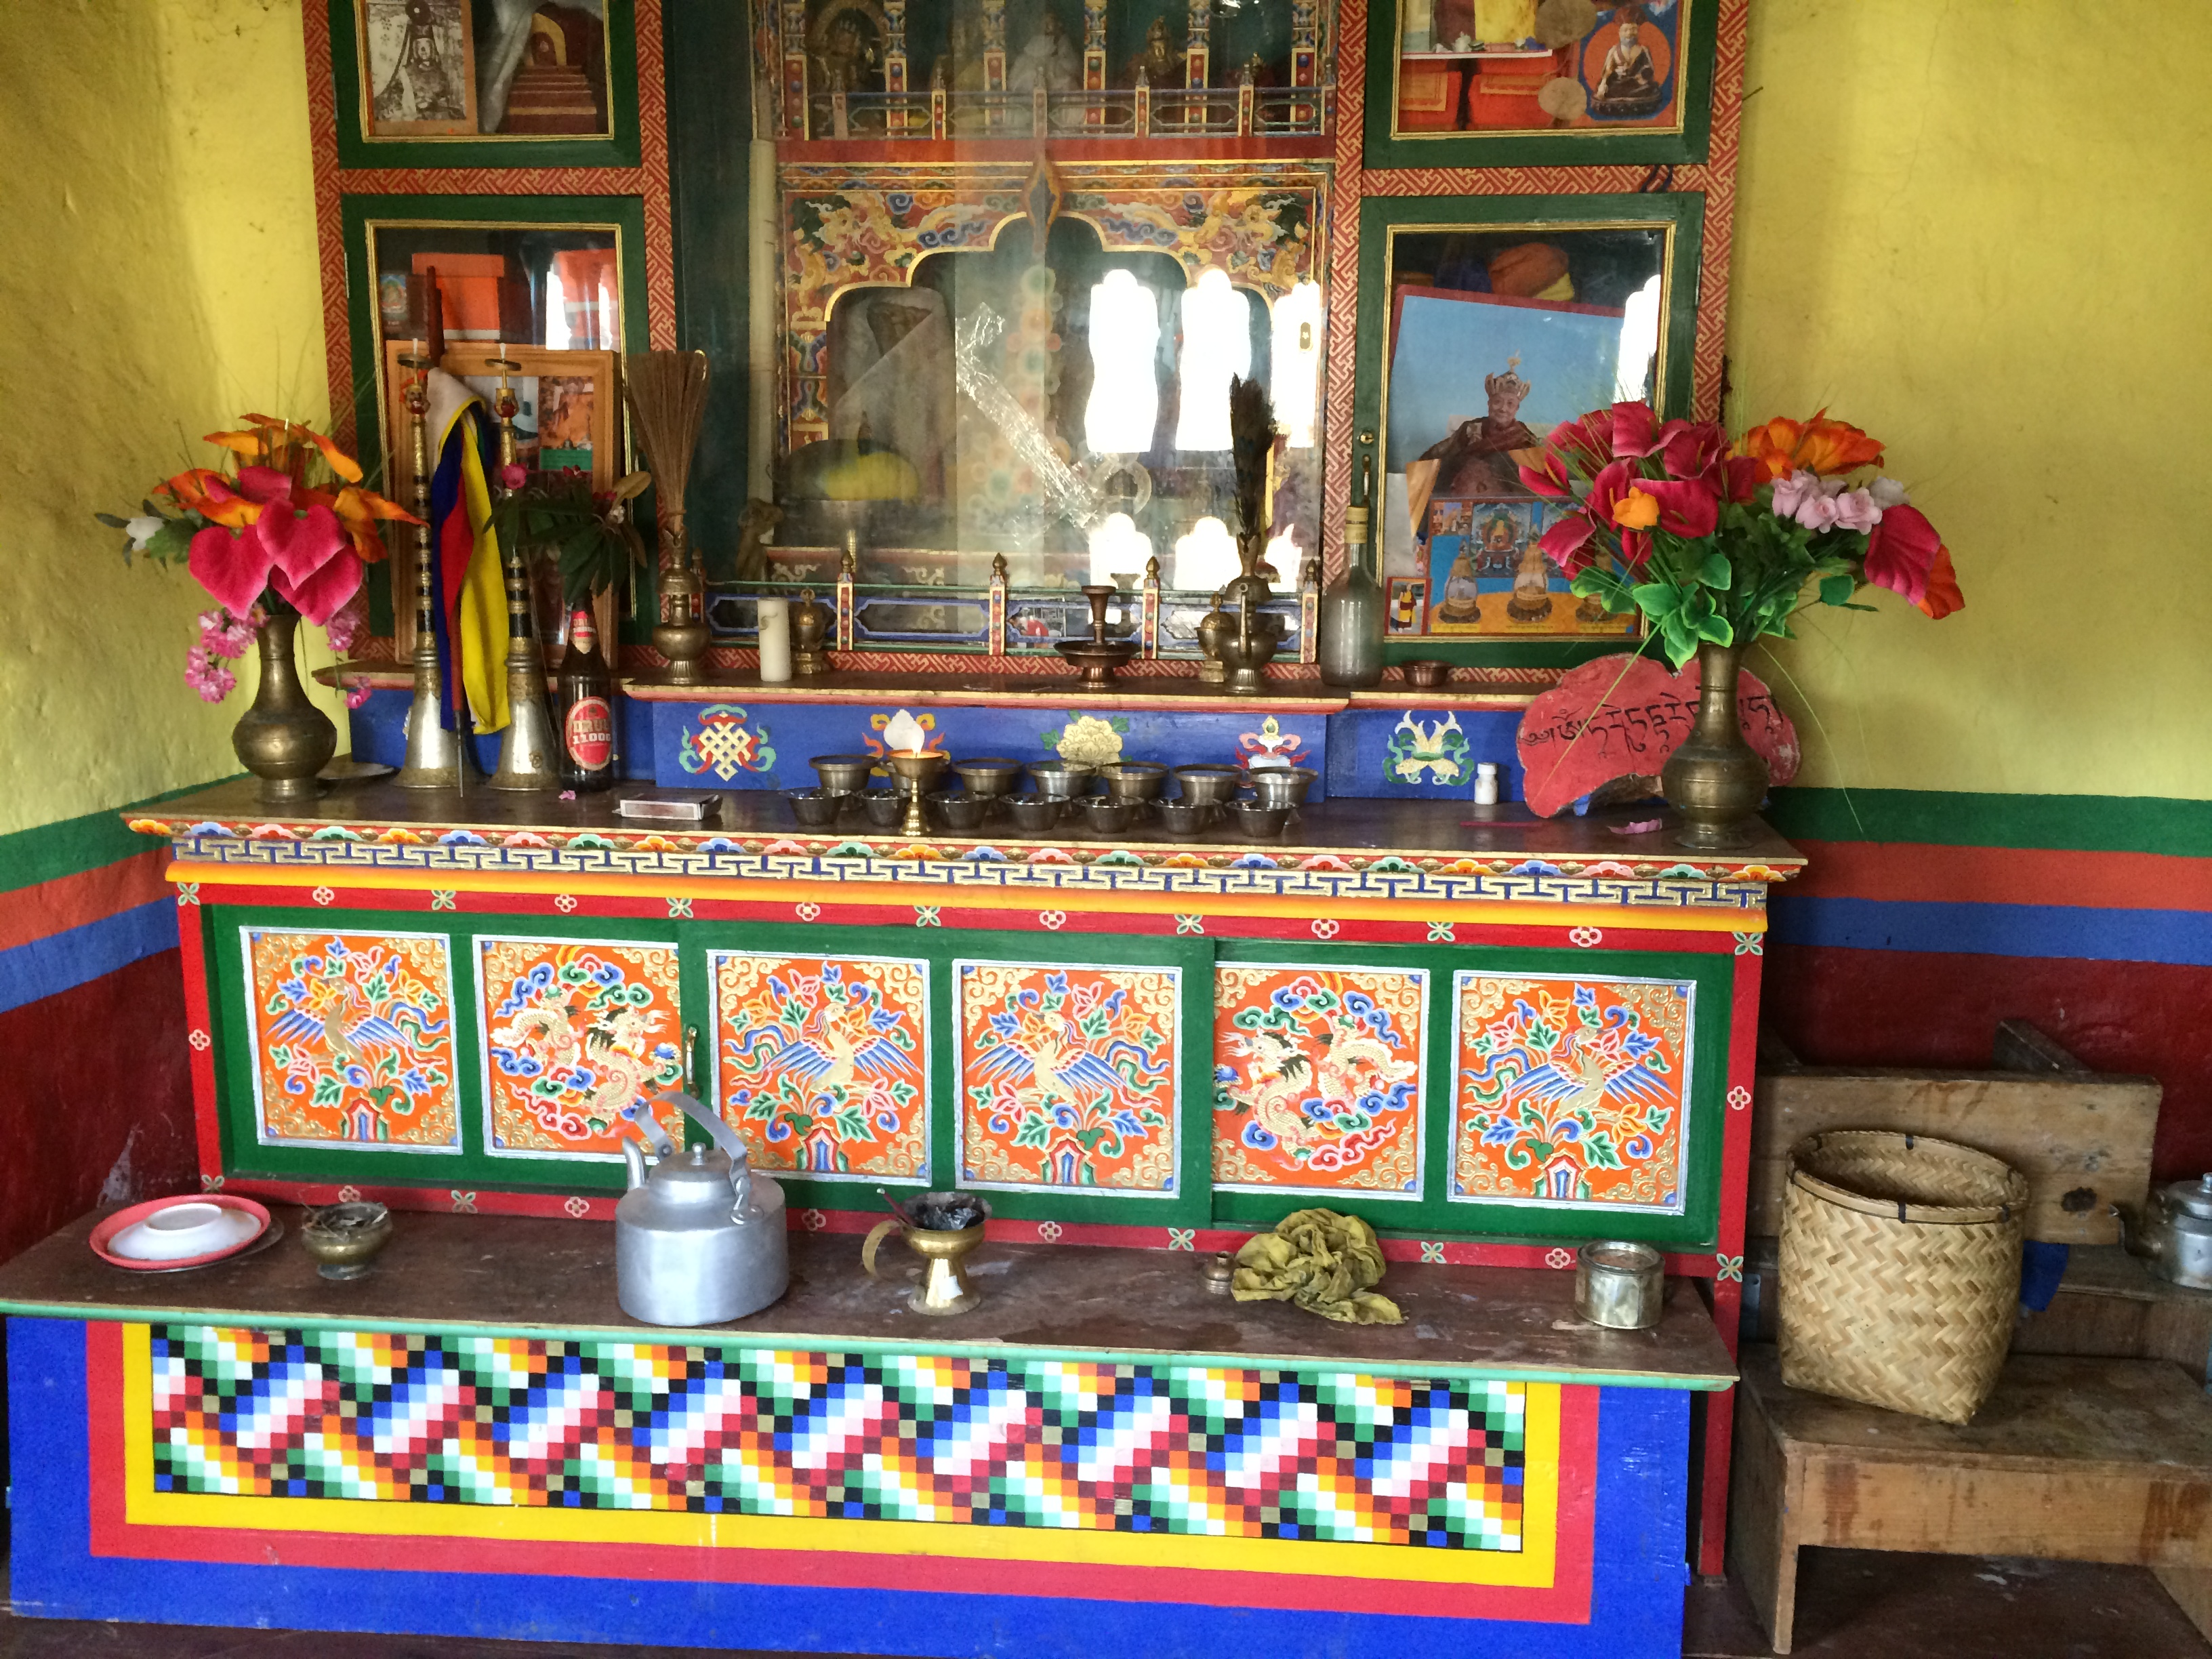 Shrine room in home in Bhutan